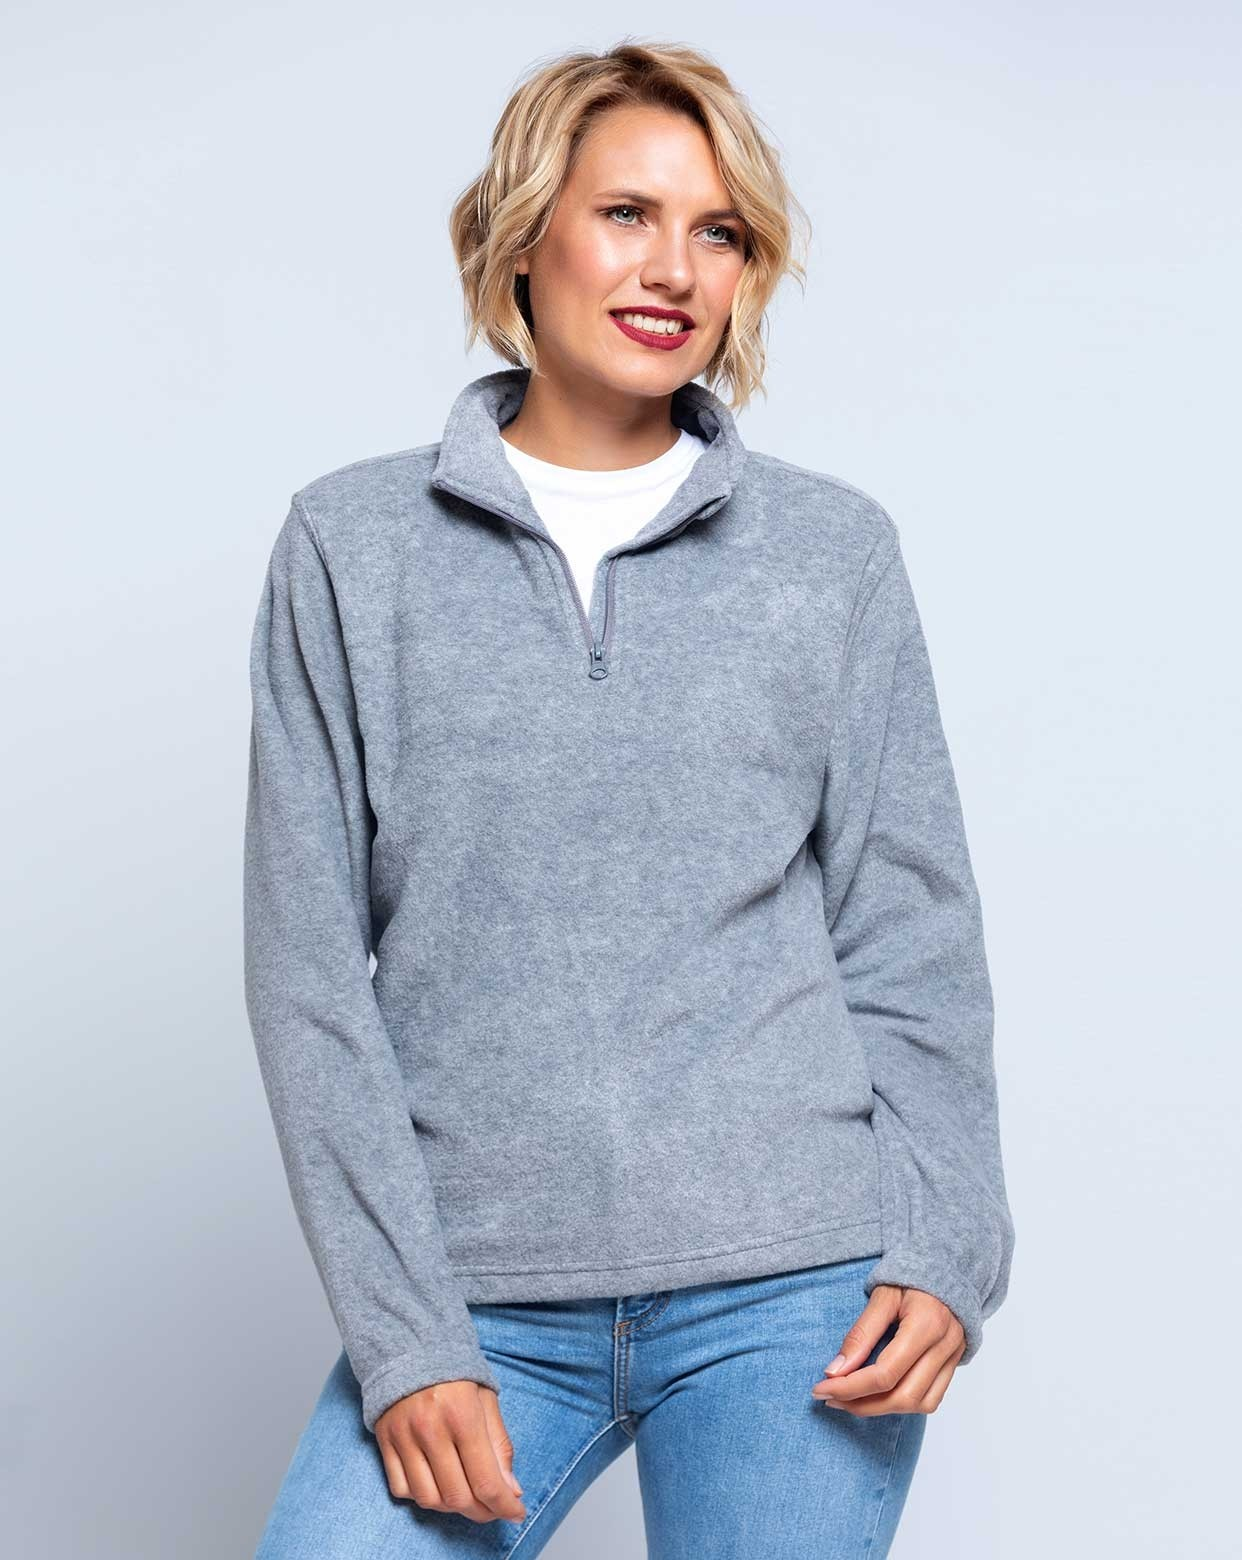 JHK MICRO FLEECE LADY